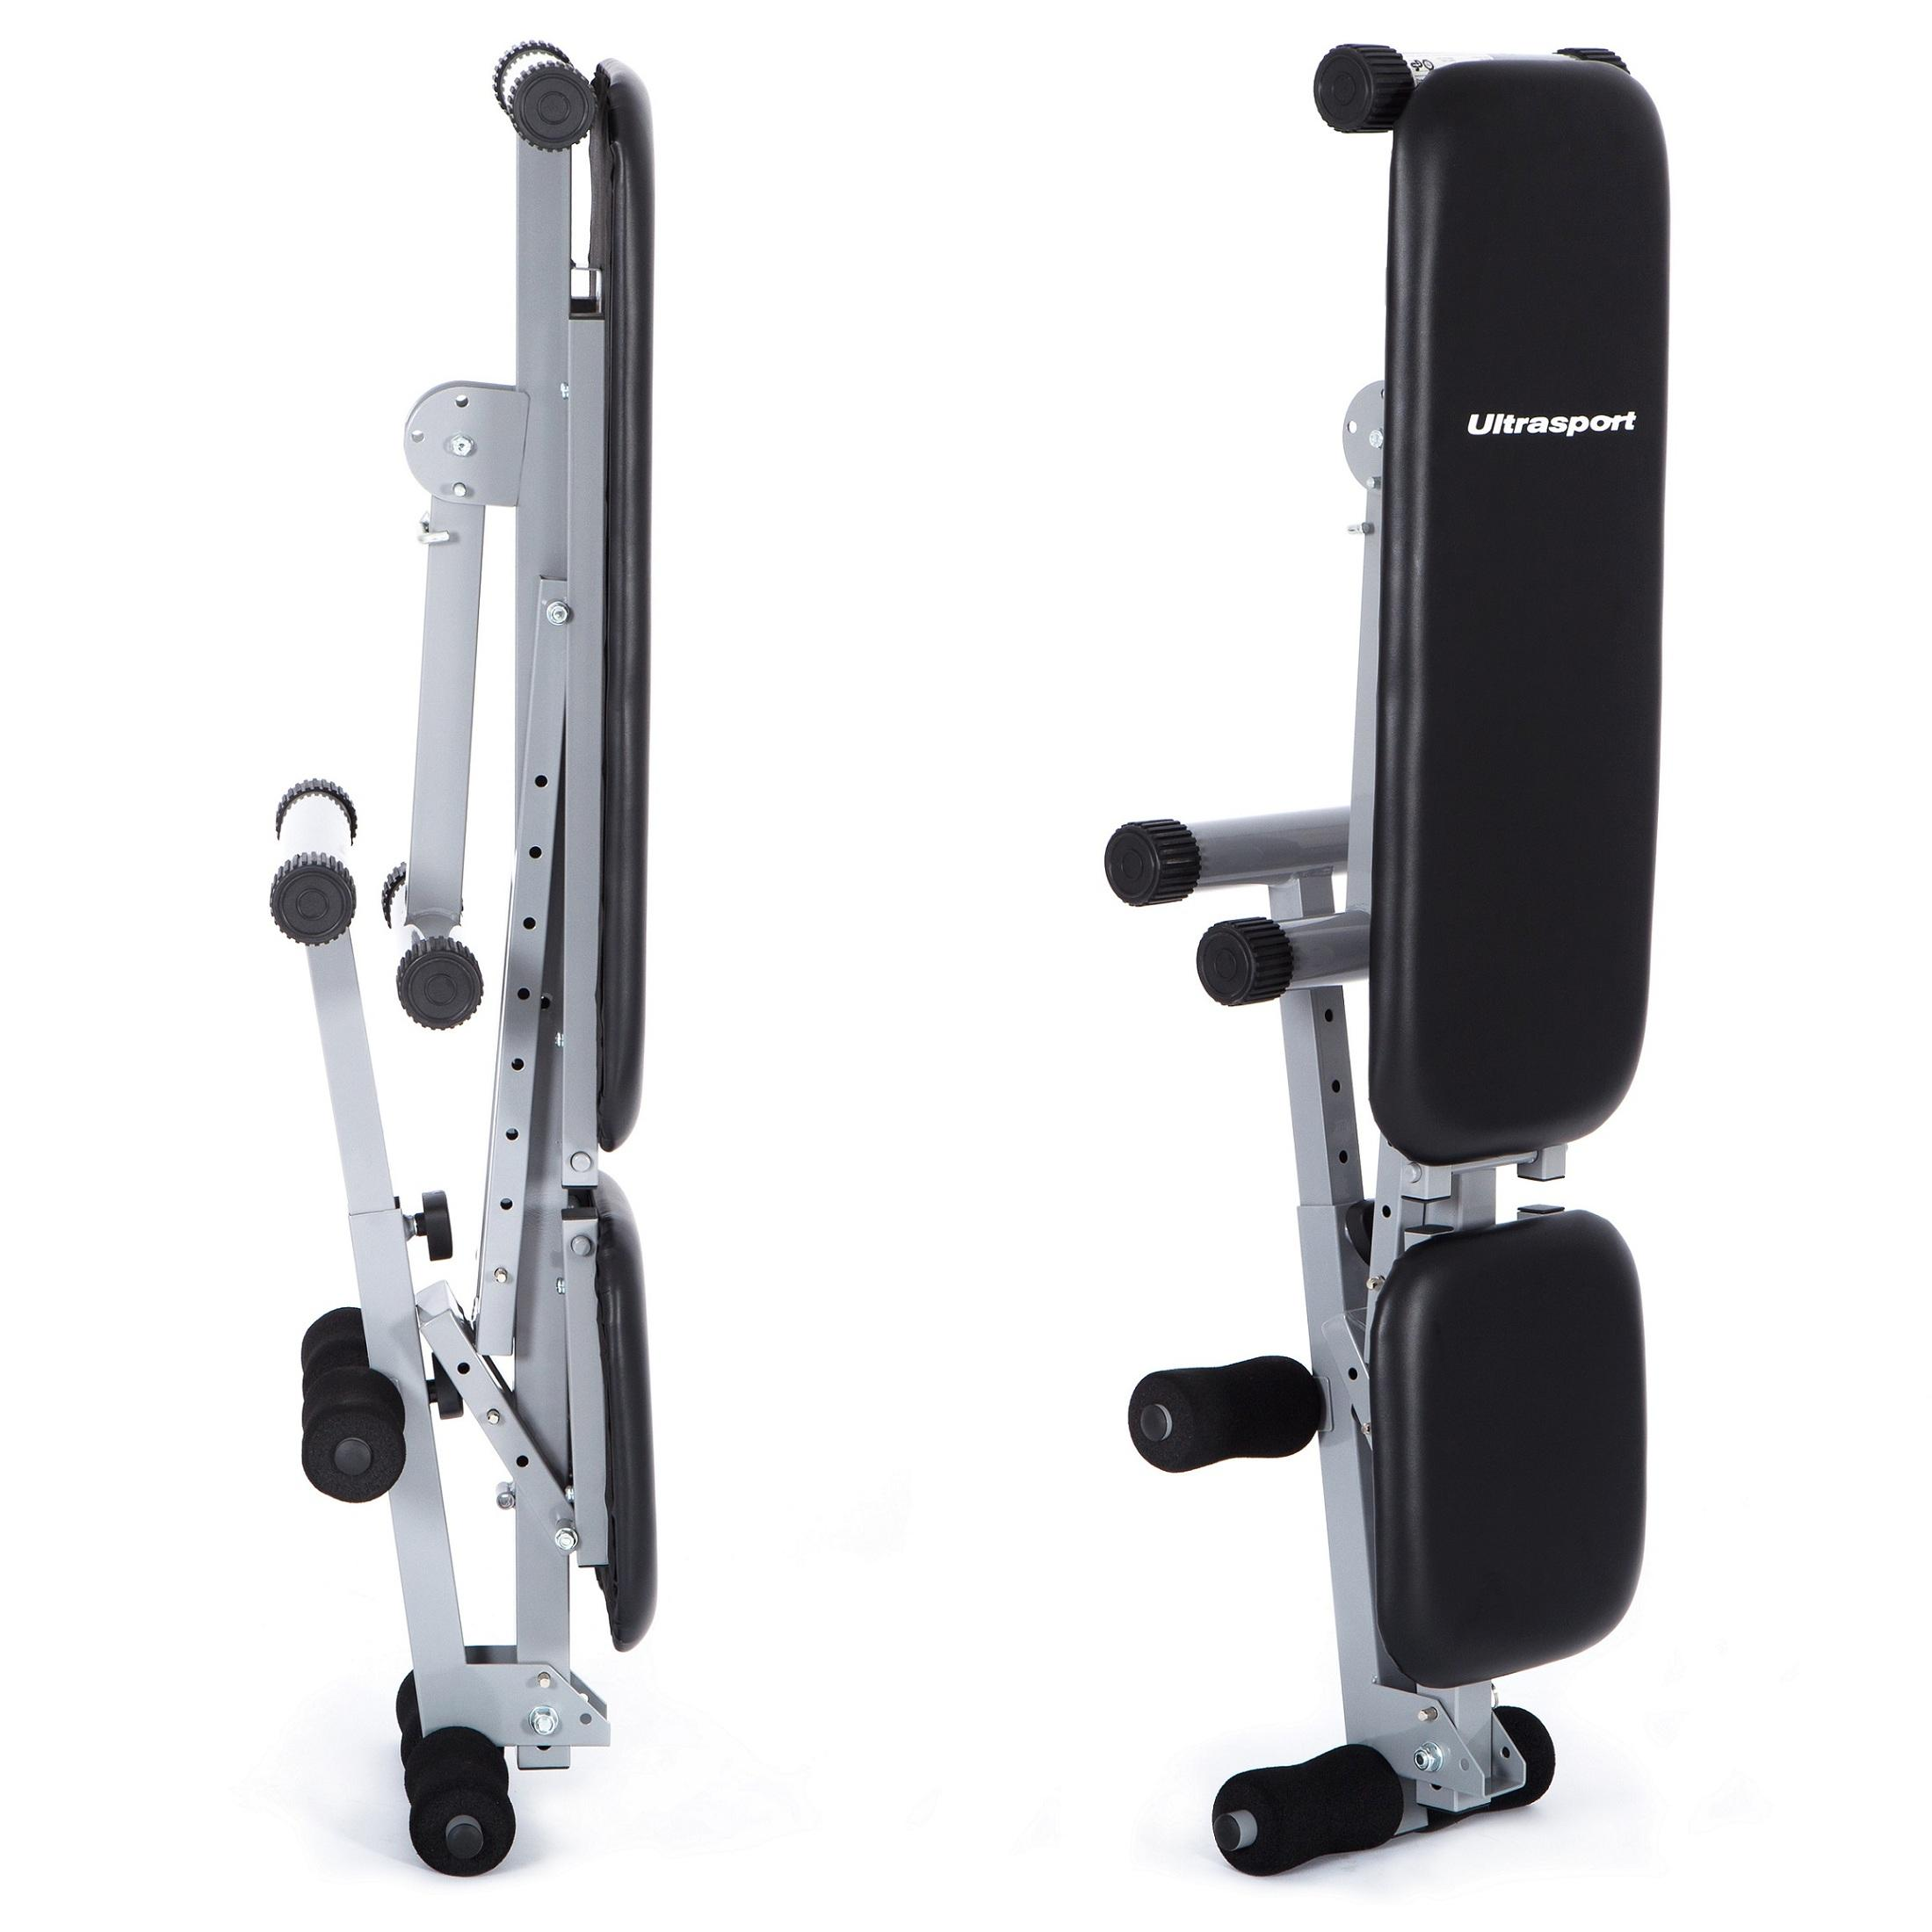 Adjustable Workout Weights: Ultrasport All-in-One Weight Bench, Adjustable Workout